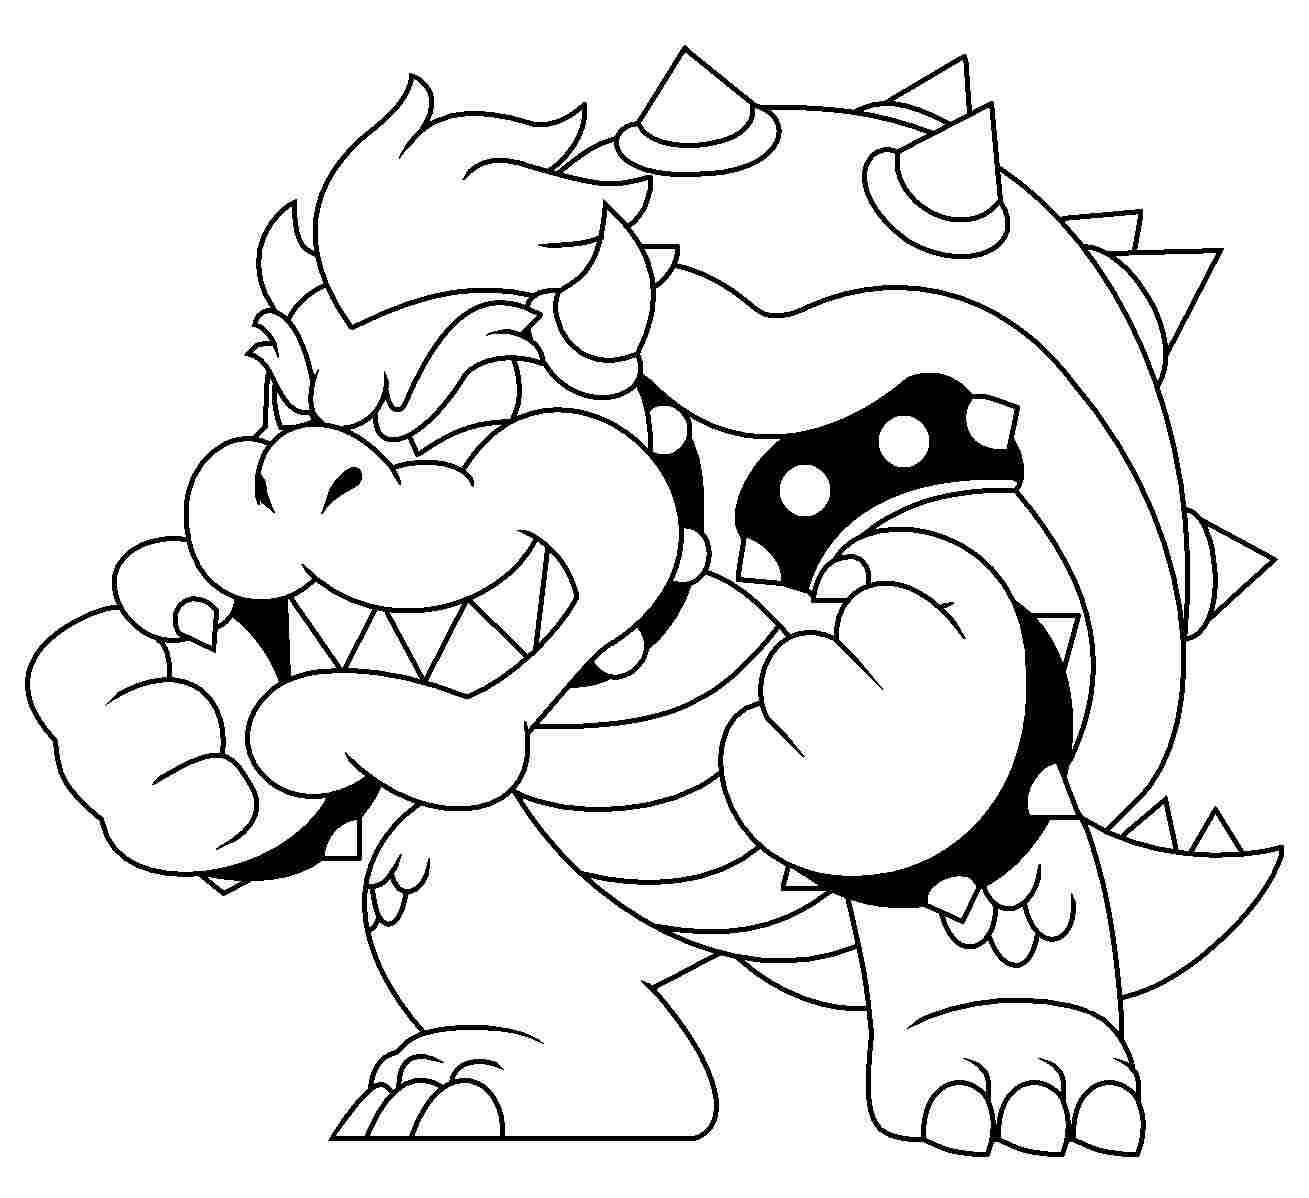 Strength of Bowser in Super Mario 3D World Coloring Page